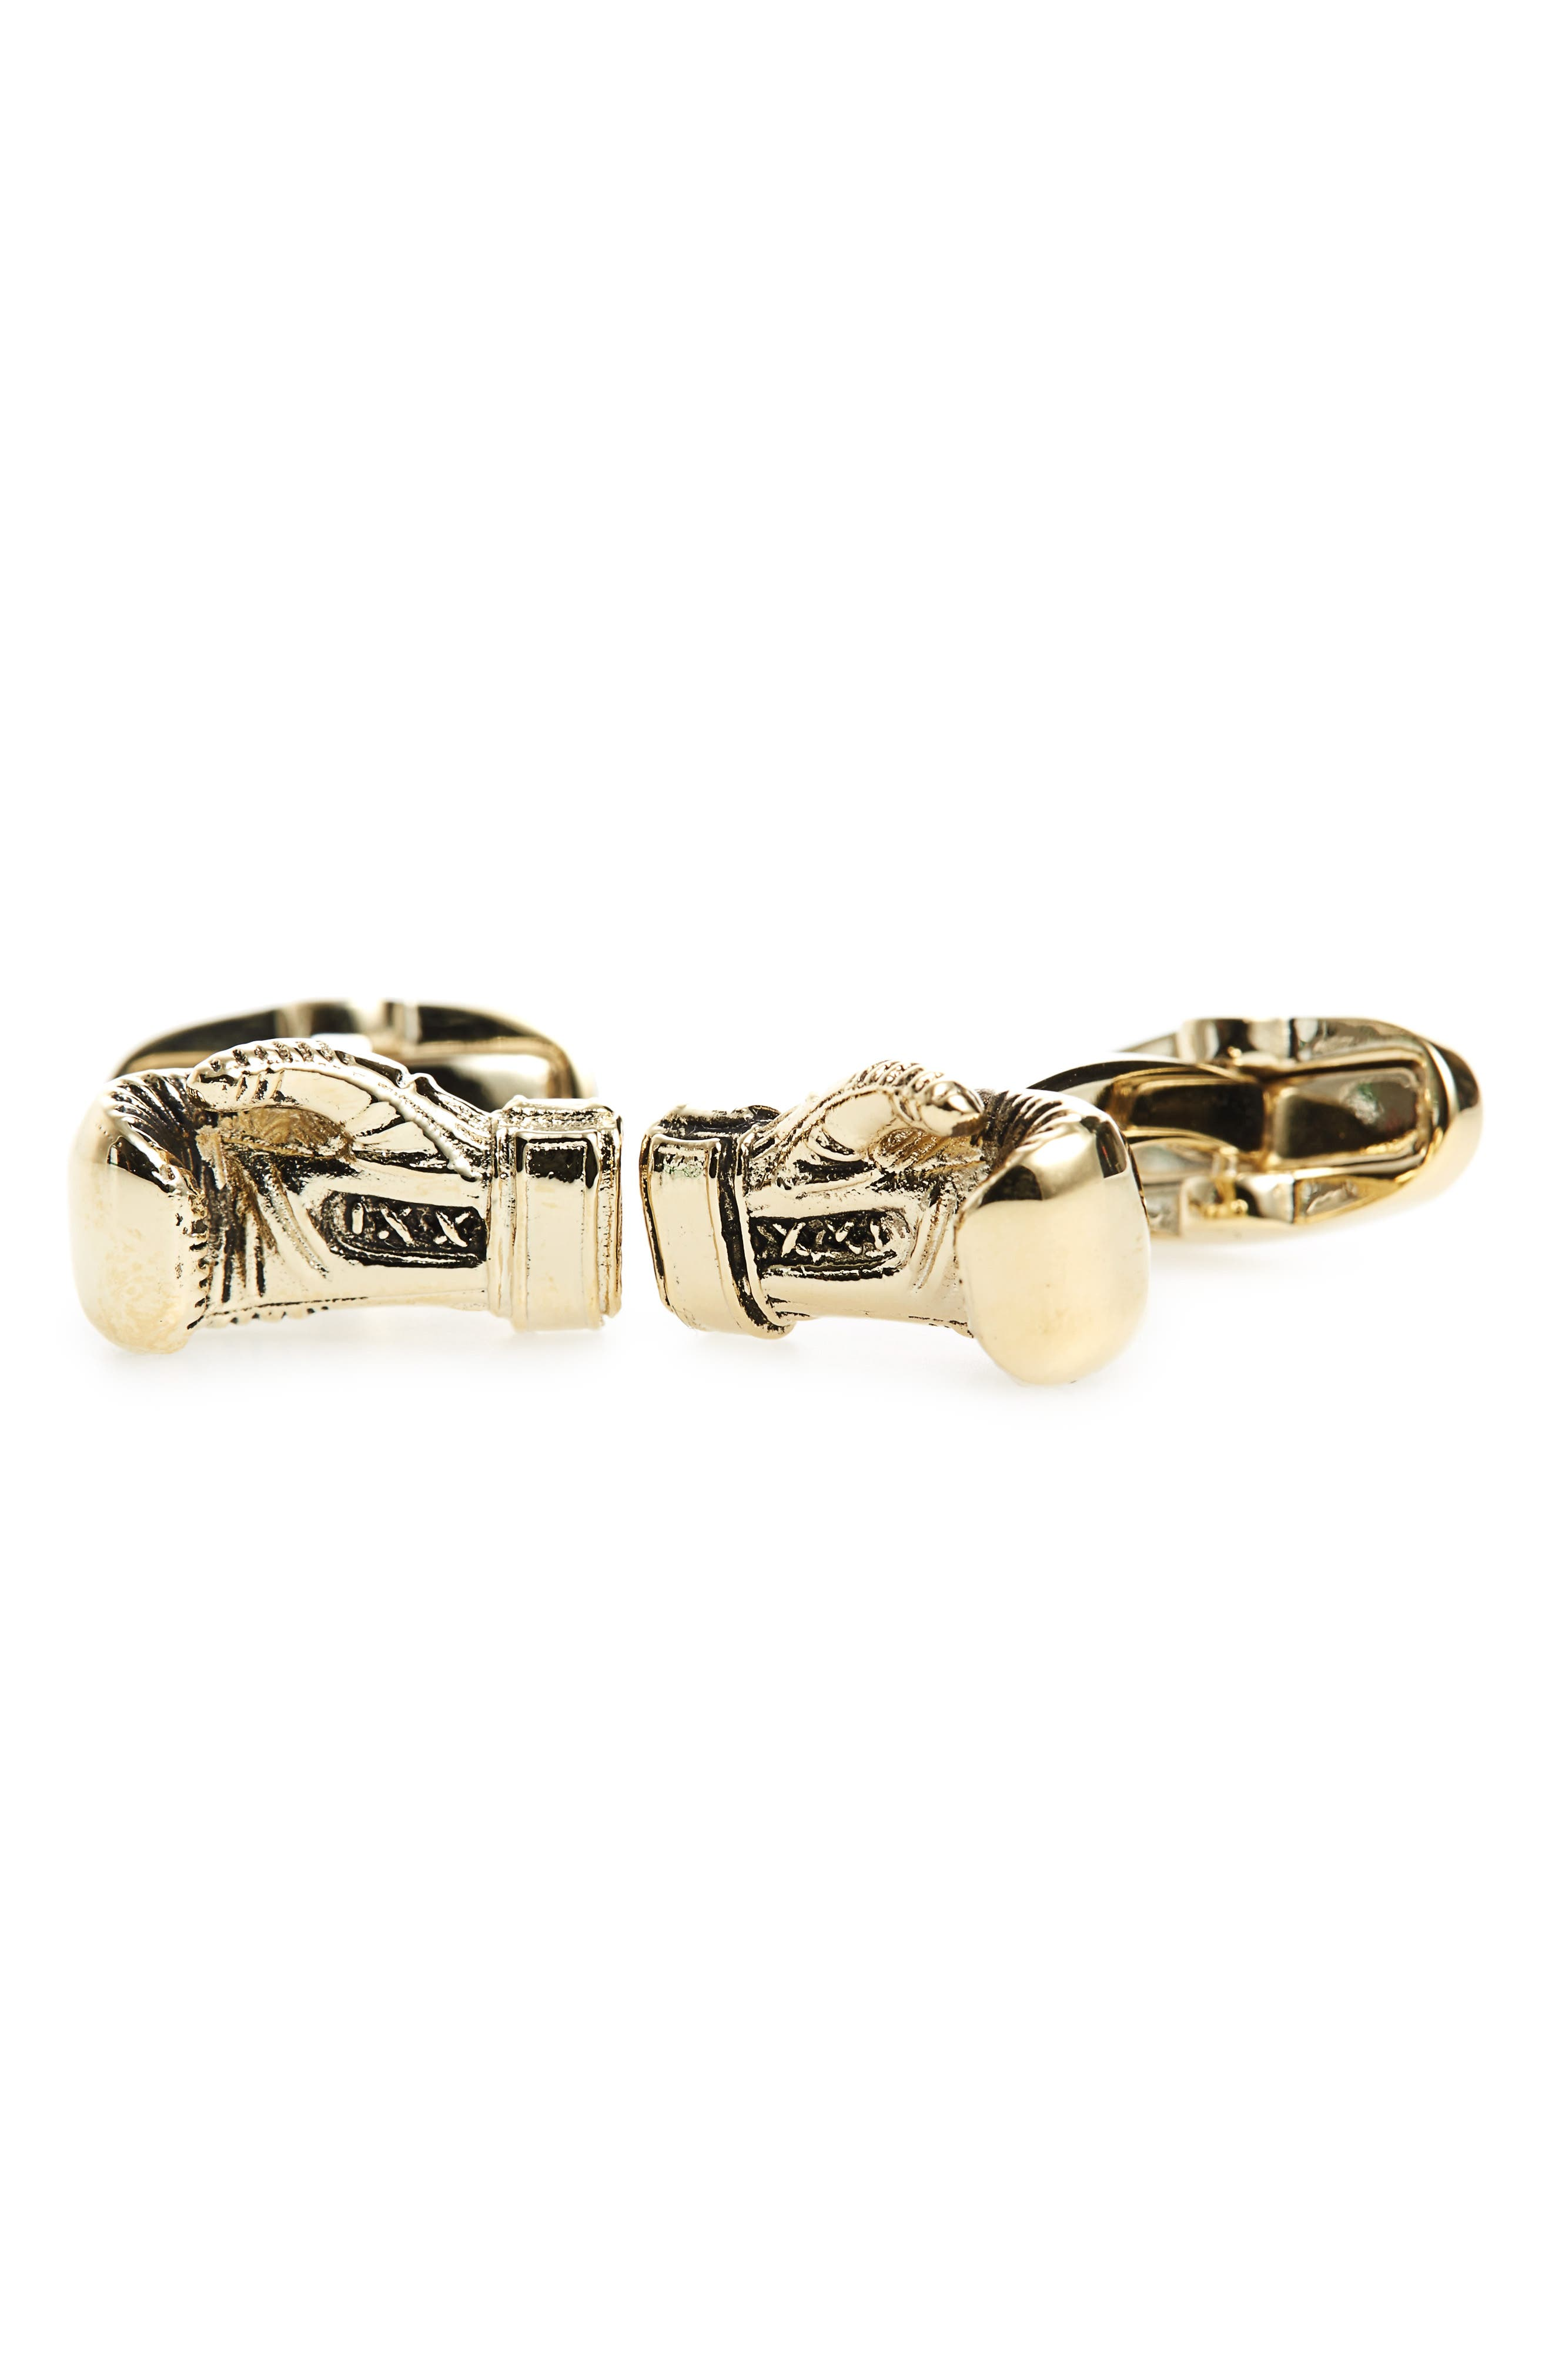 Boxing Glove Cuff Links,                             Main thumbnail 1, color,                             Gold